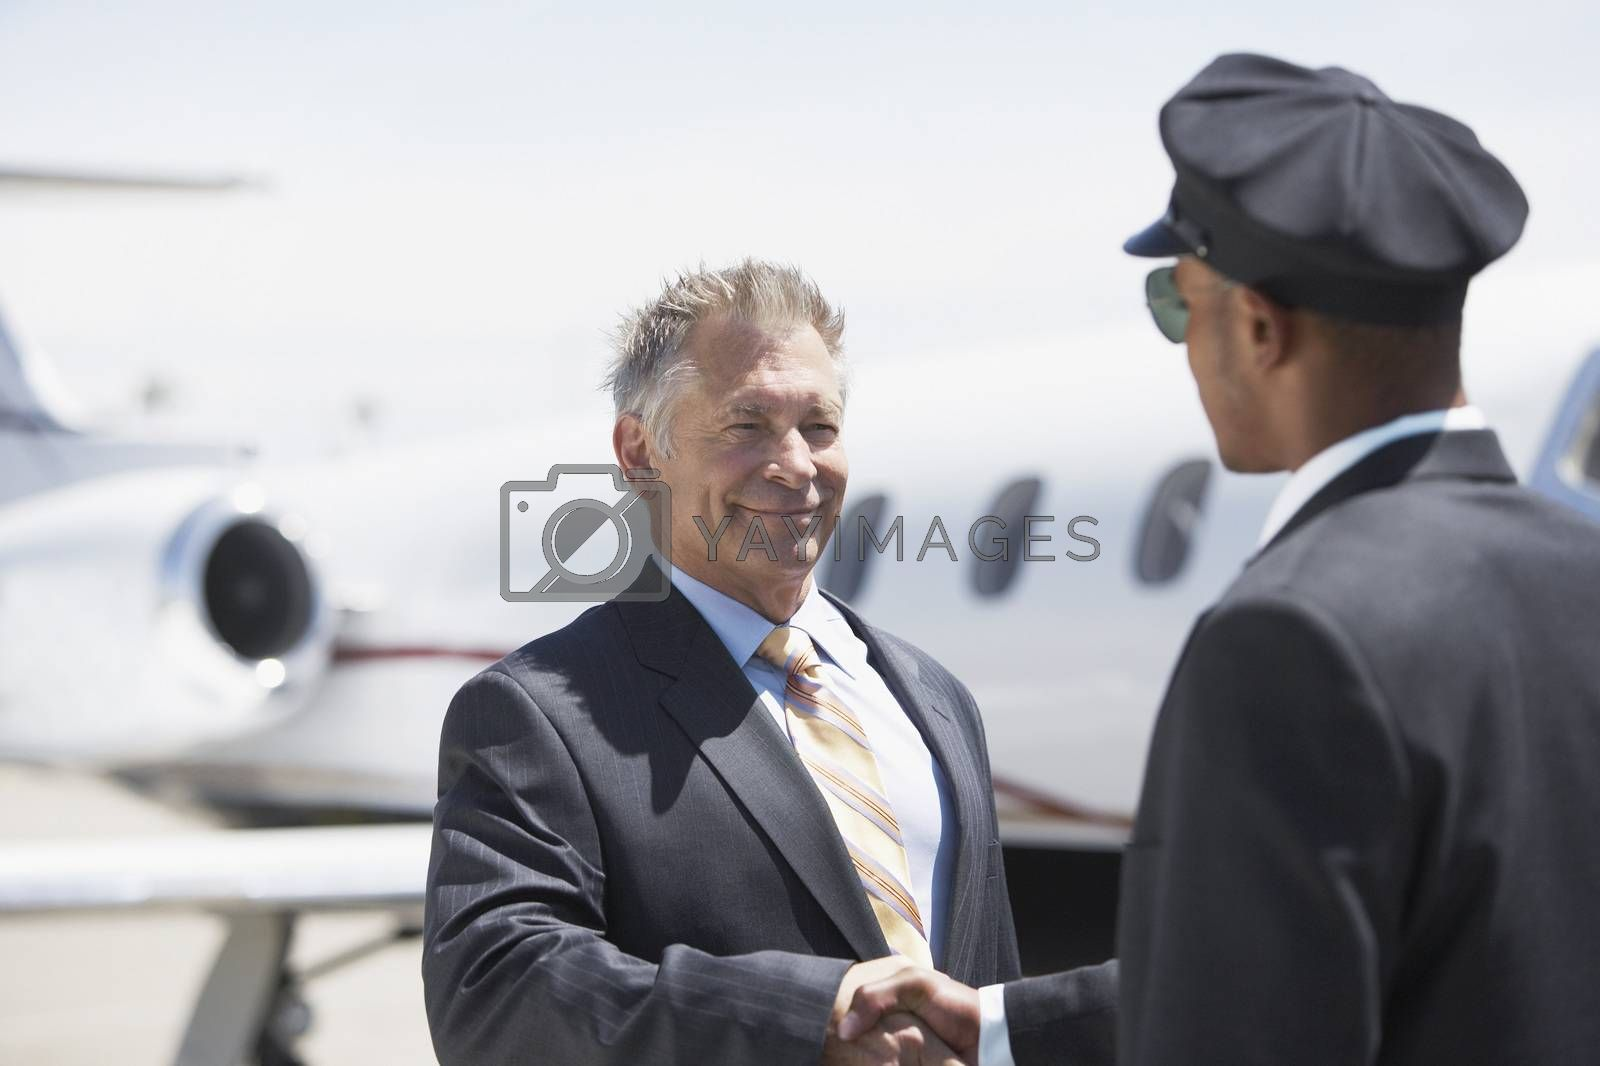 Businessman Shaking Hands With Pilot And Aircraft In Background